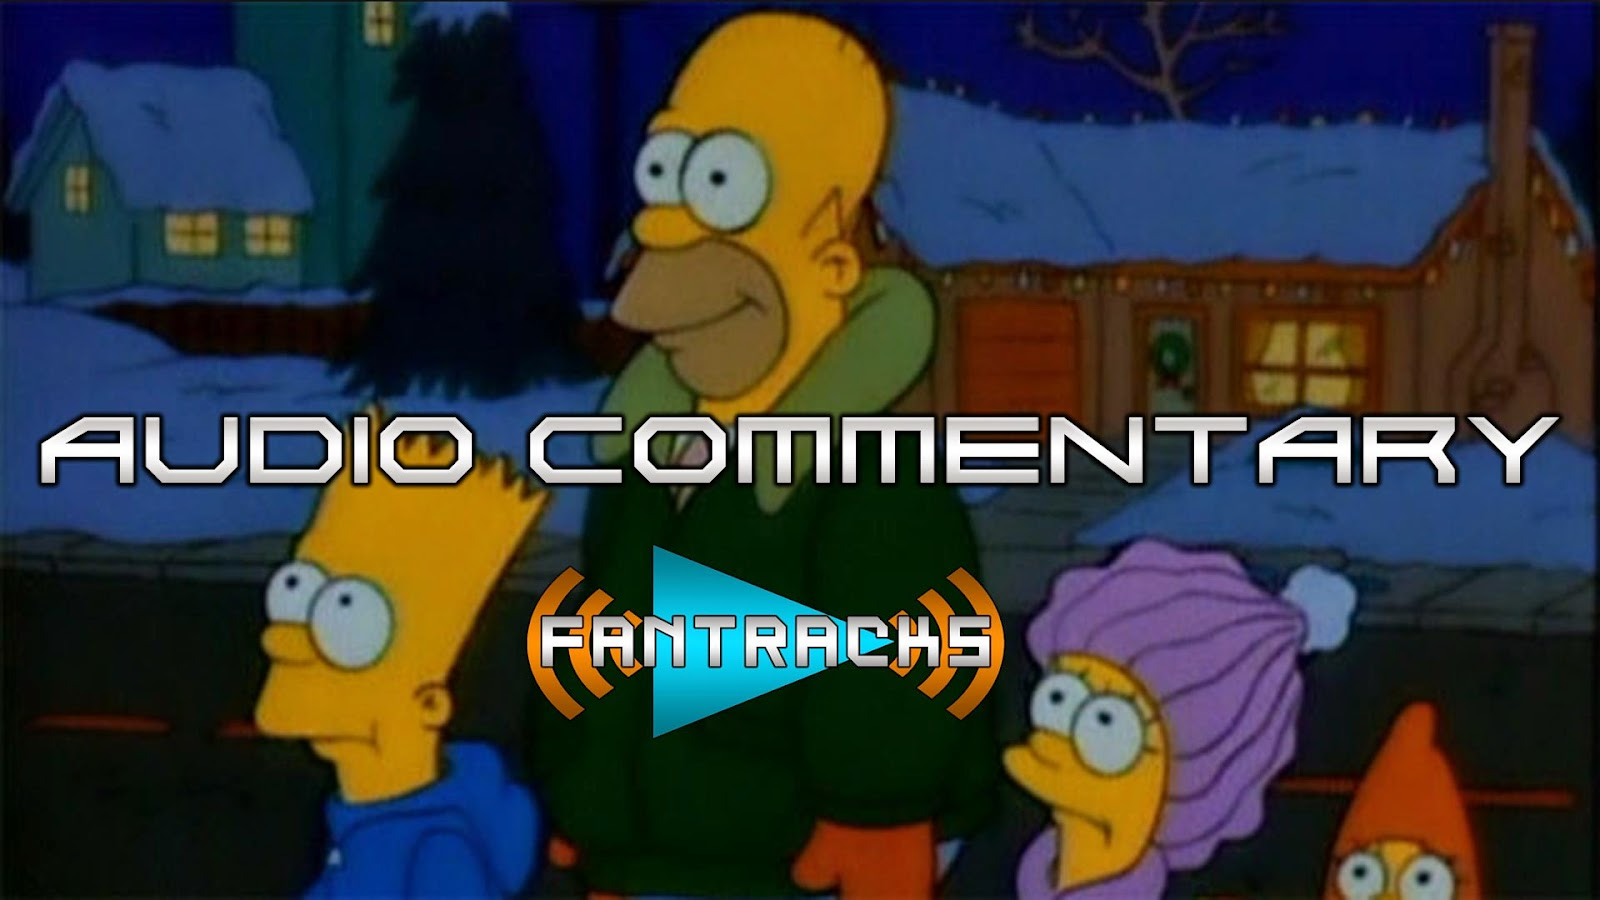 FanTracks The Simpsons audio commentary